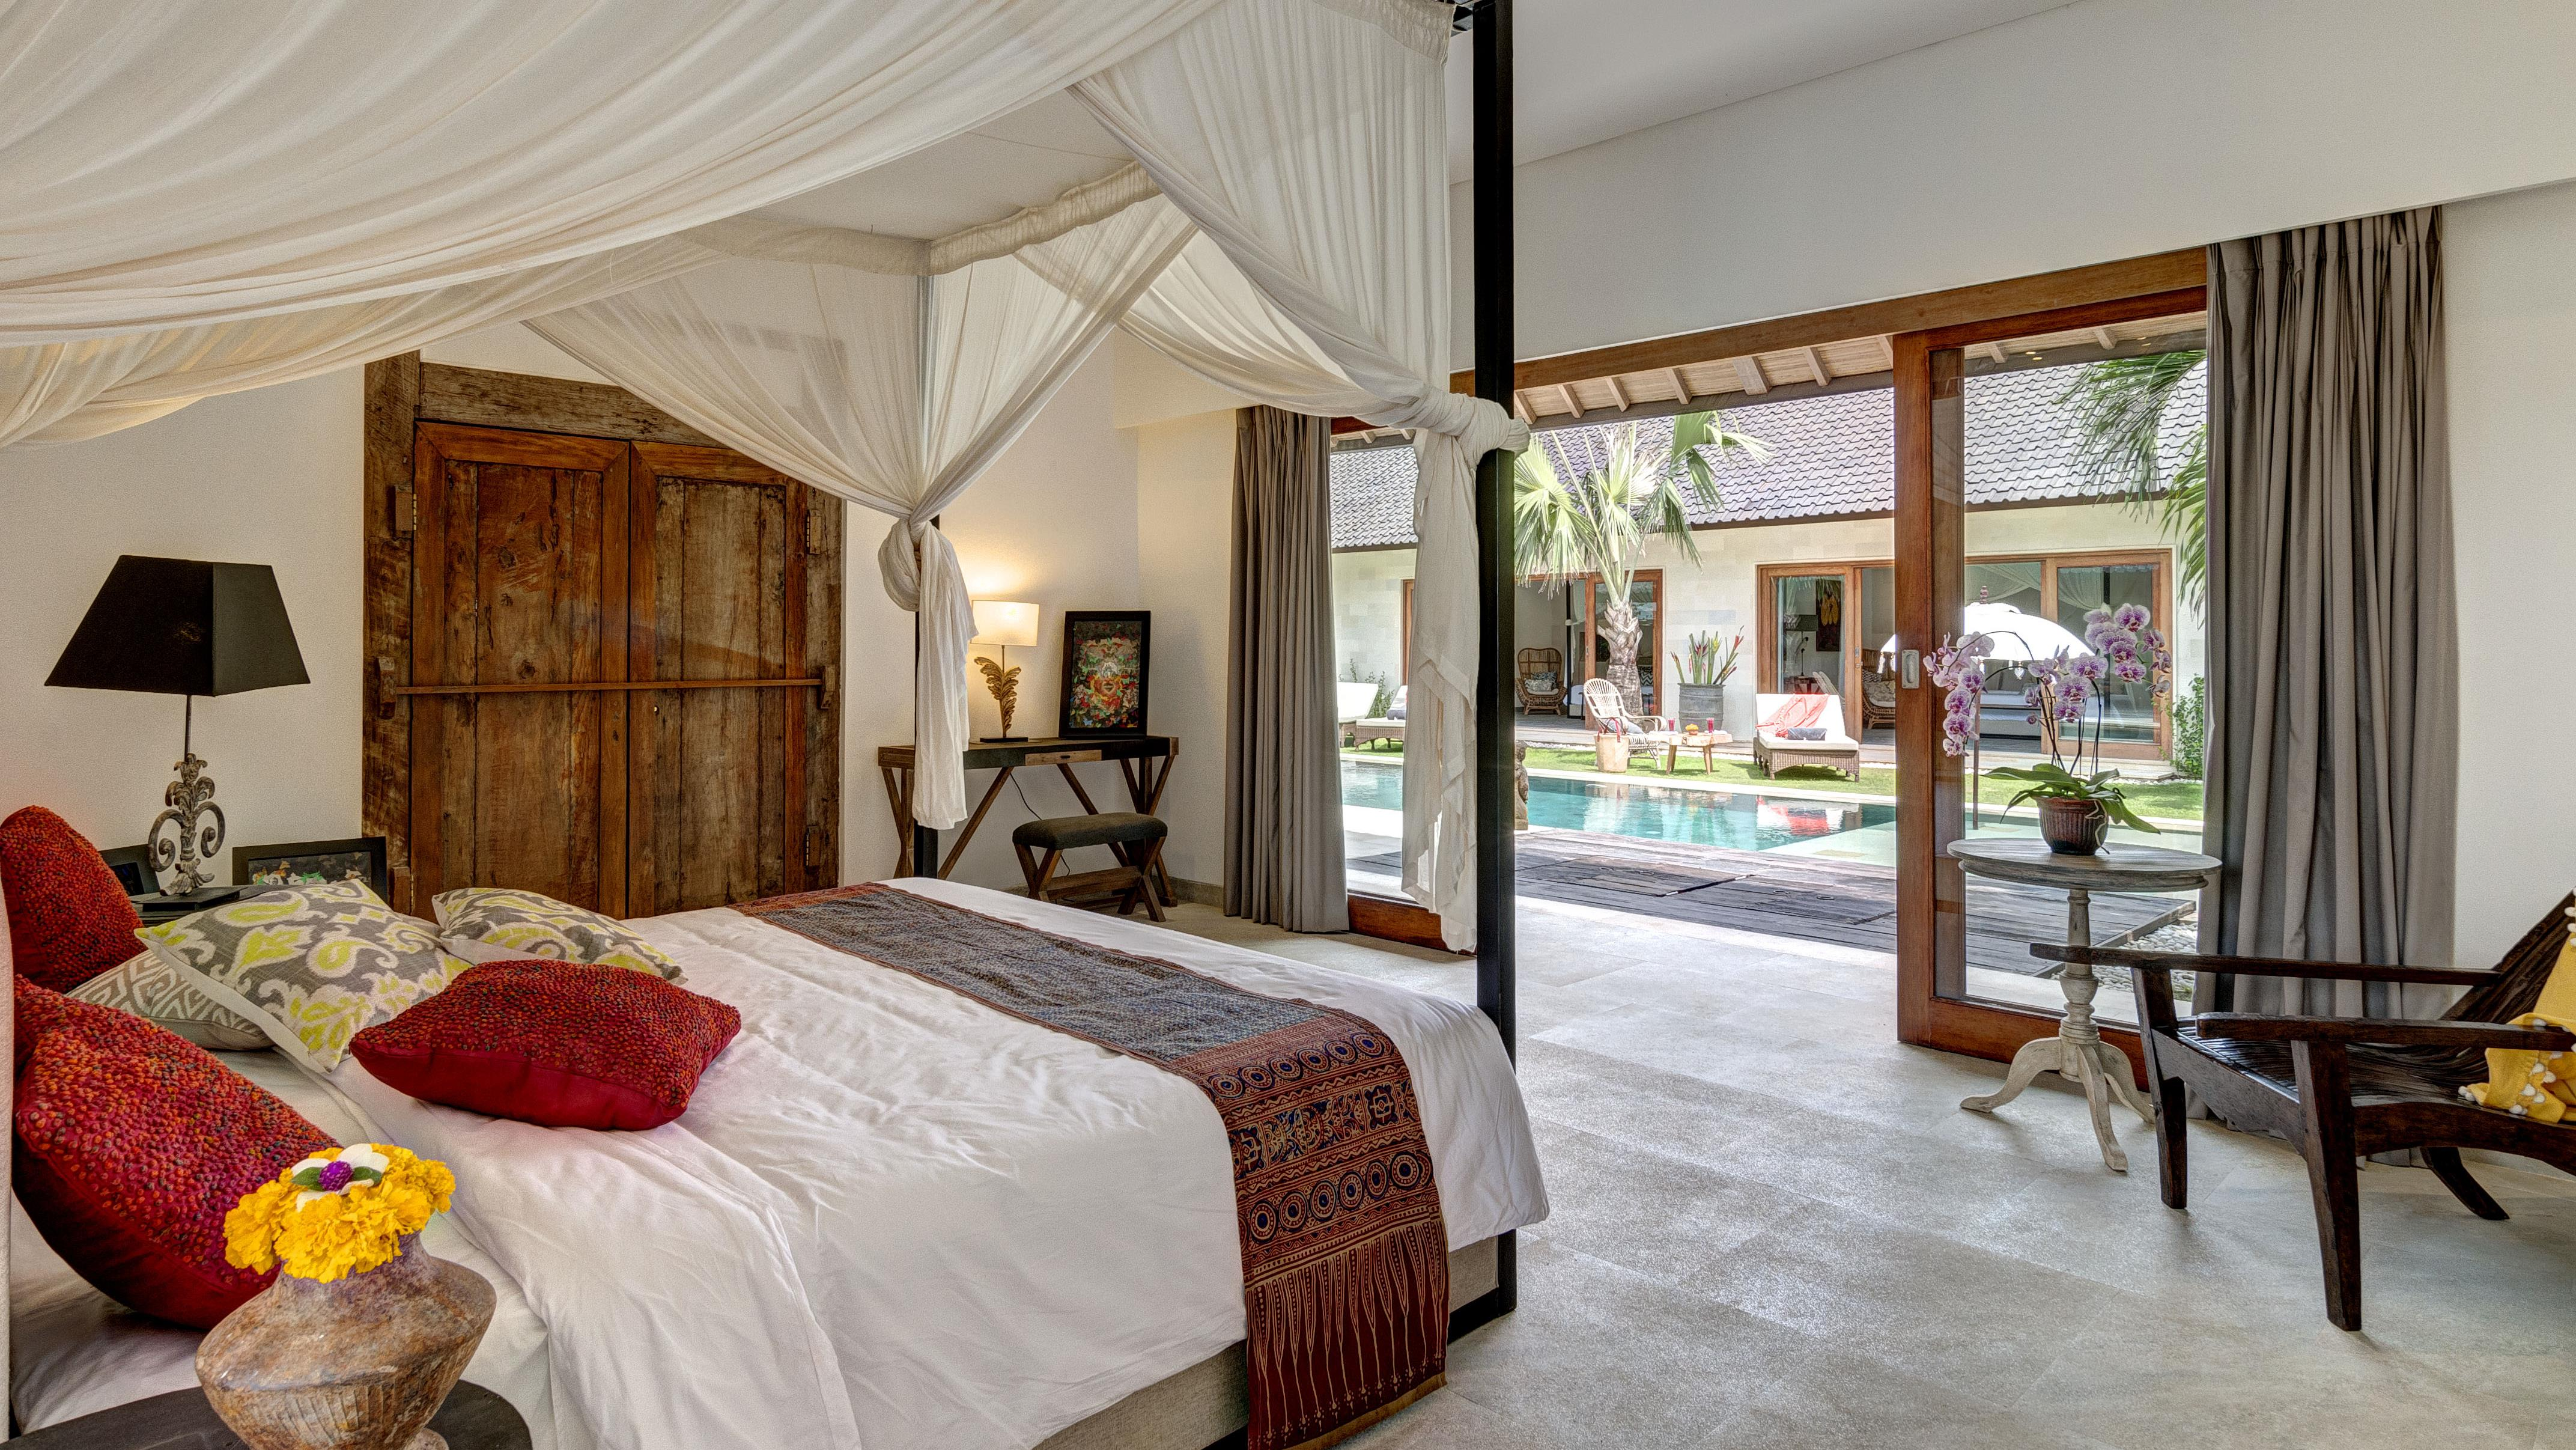 Bedroom with Pool View - Abaca Villas - Seminyak, Bali